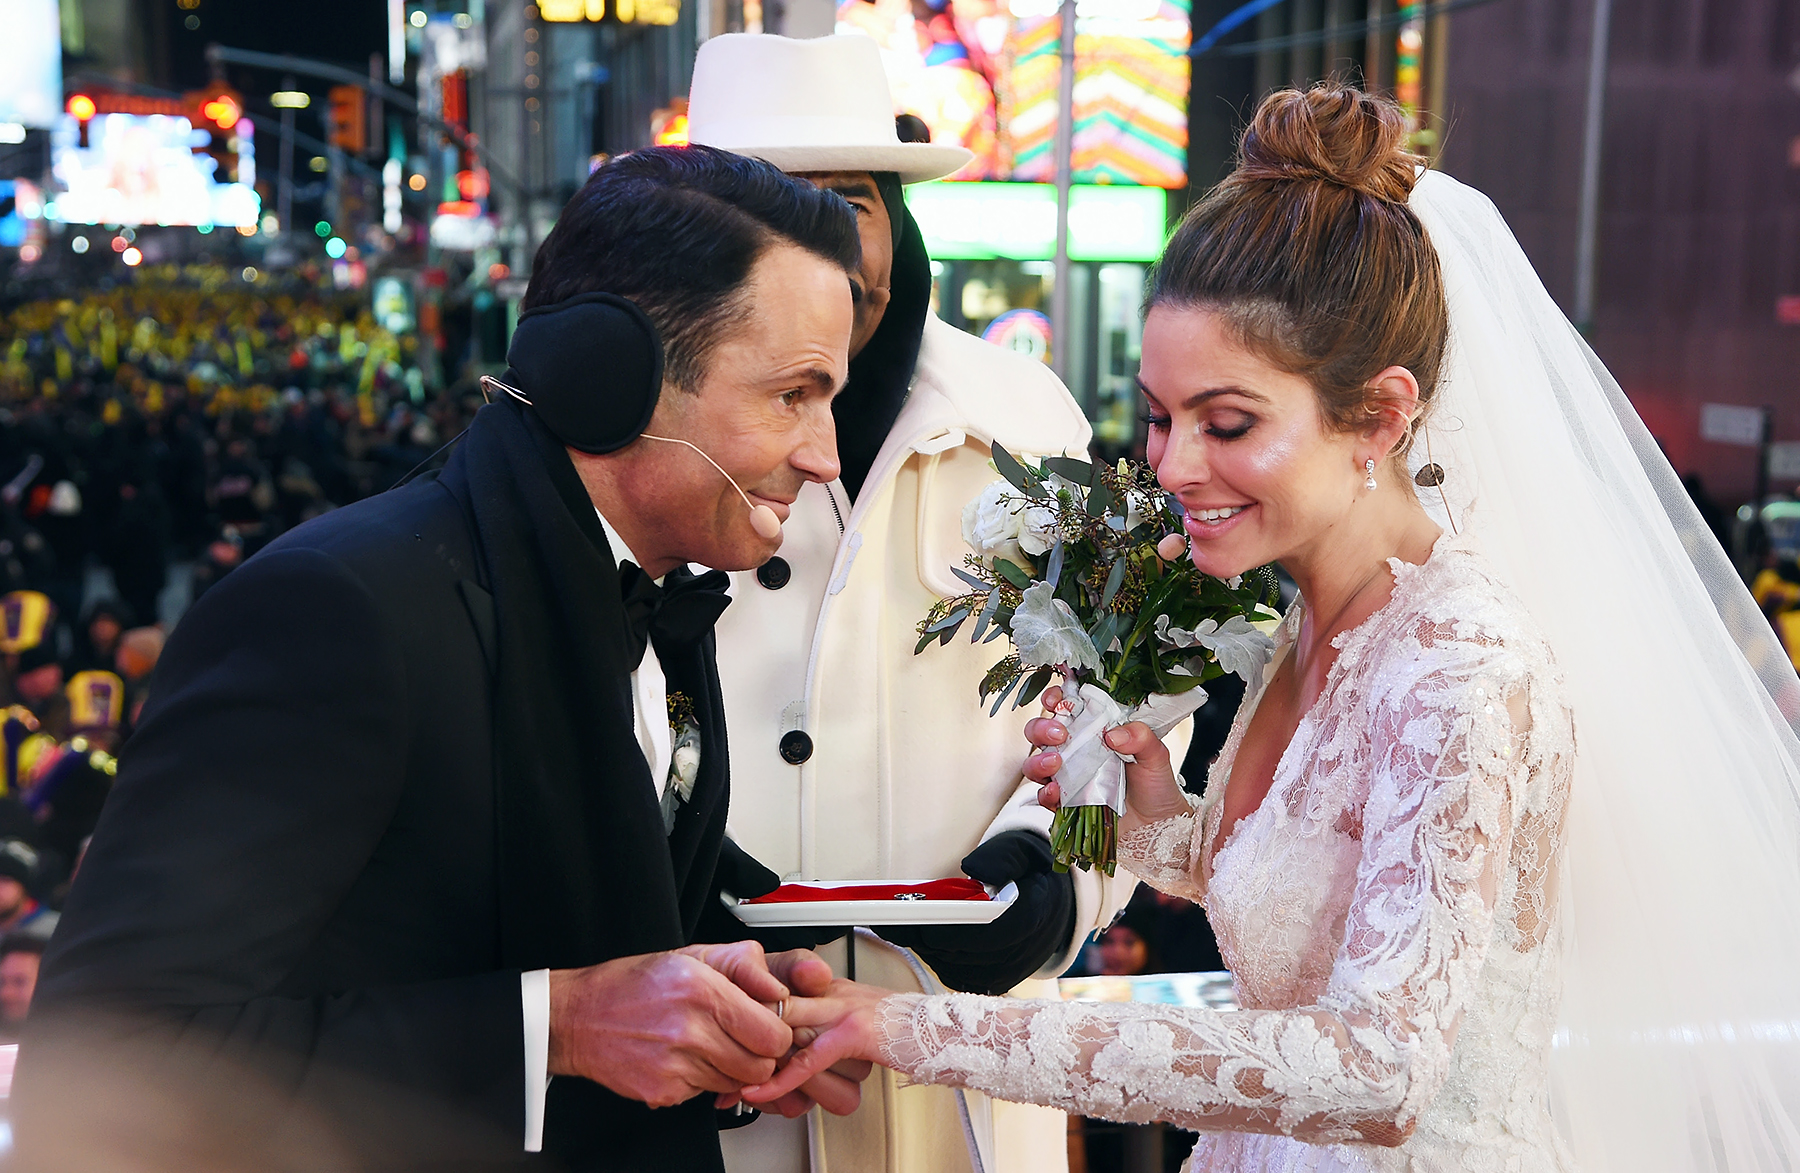 Wedding in exchange: actors and roles in the film